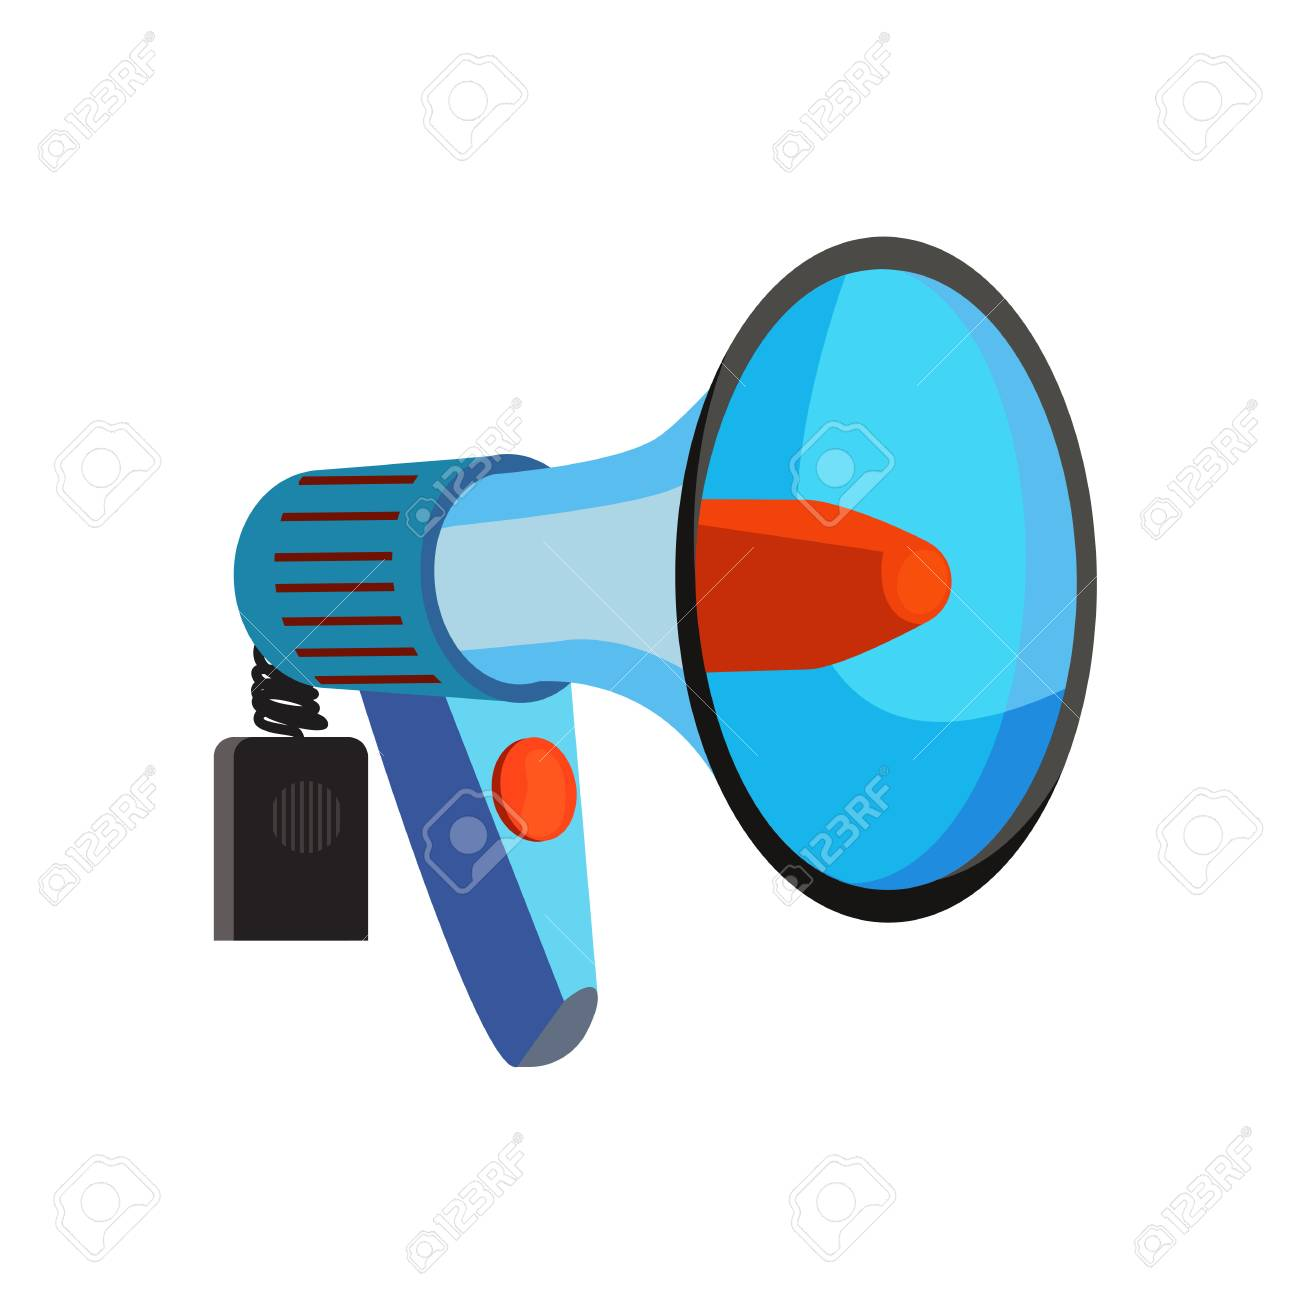 blue electronic megaphone vector illustration sport fan loudspeaker royalty free cliparts vectors and stock illustration image 125270556 123rf com